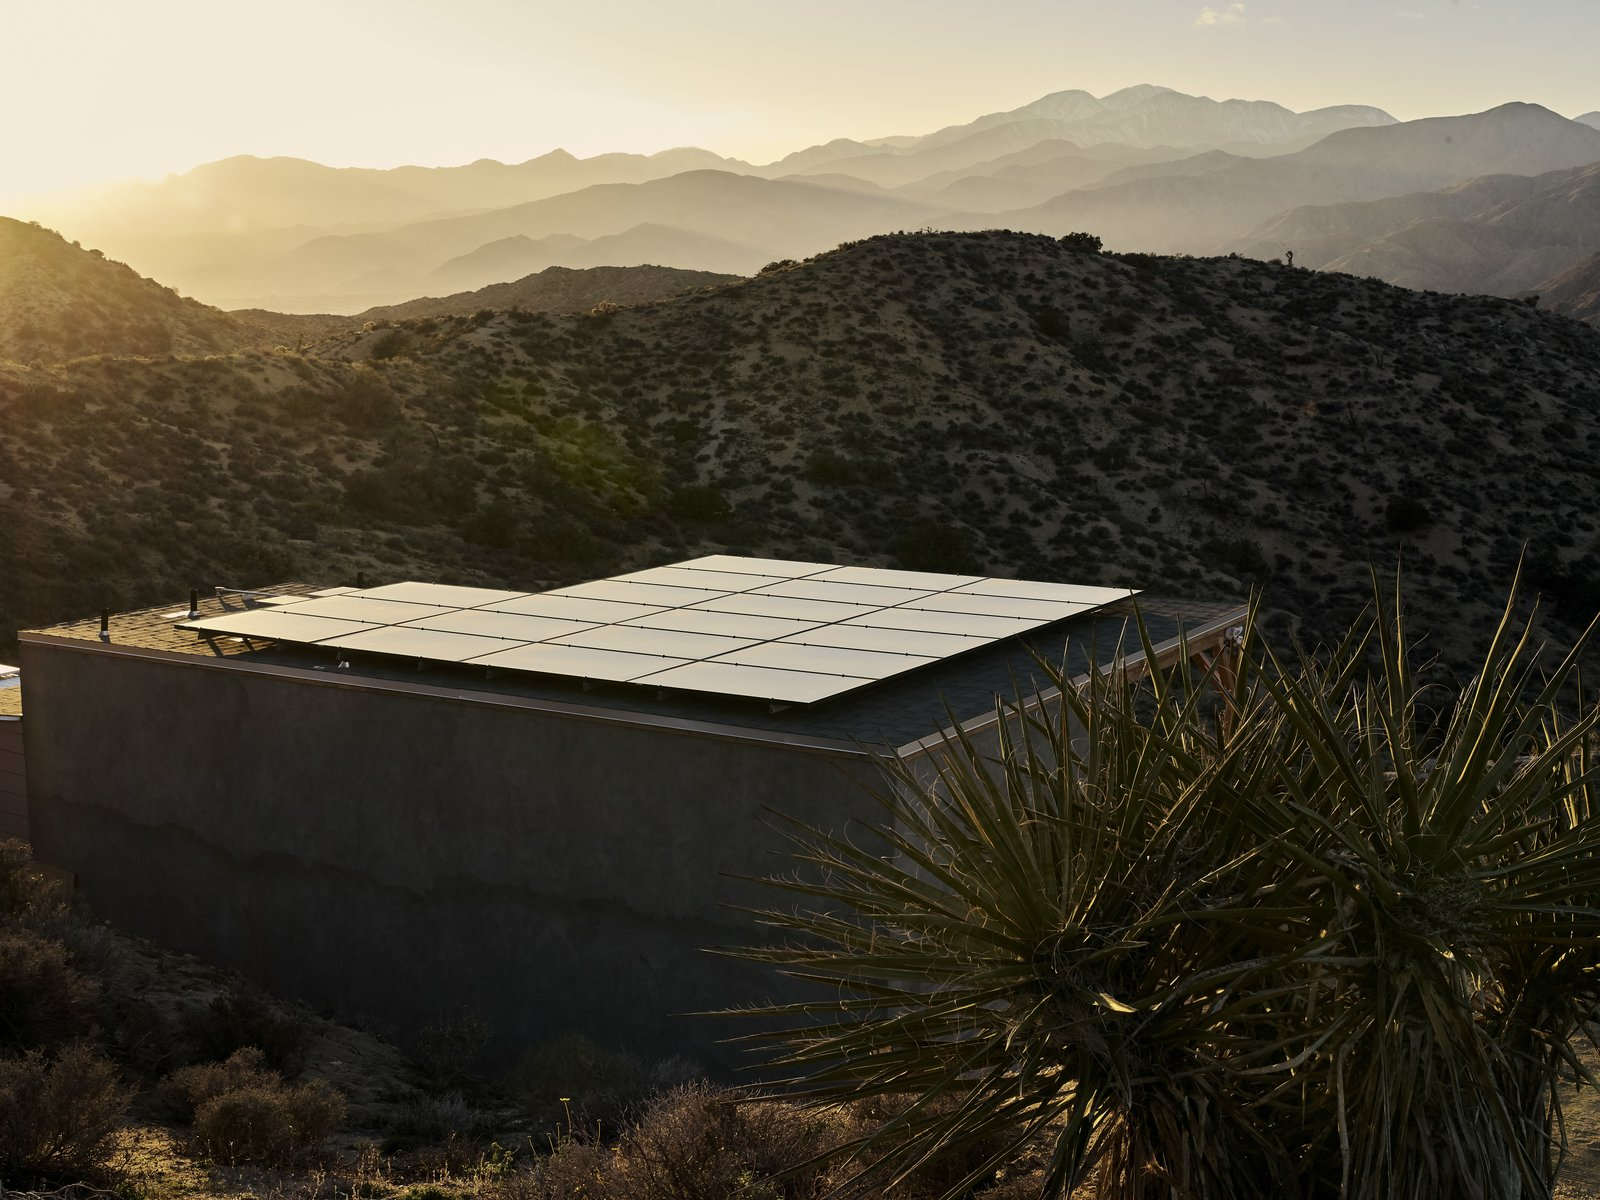 """Outdoor, Desert, and Shrubs A new structure near the dome holds an array of solar panels and three lithium-ion batteries. """"The power is completely sustainable,"""" says Sam. """"I can even run the air-conditioning on it.""""  Best Outdoor Desert Shrubs Photos from A Tech Entrepreneur Rehabs an Off-Grid Dome Home in Joshua Tree"""